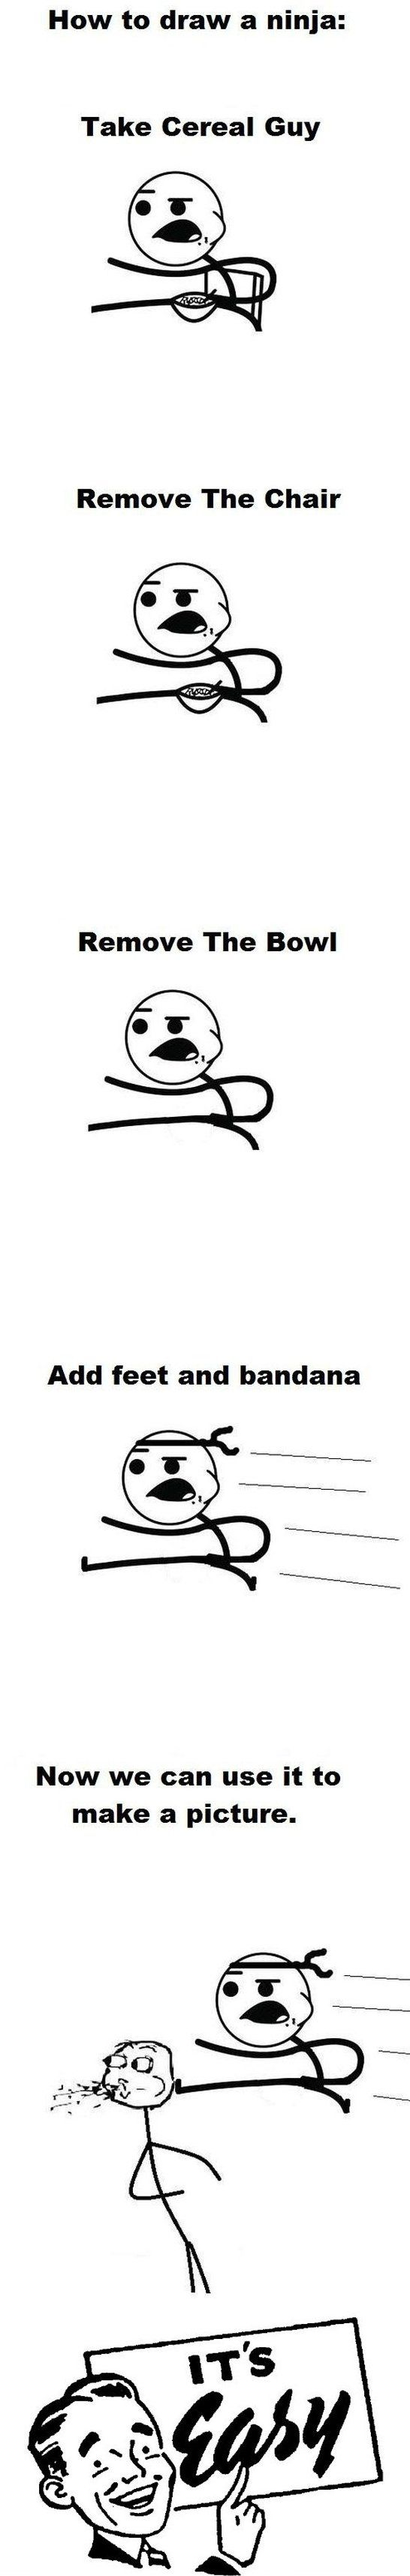 Cereal Guy  - www.meme-lol.com